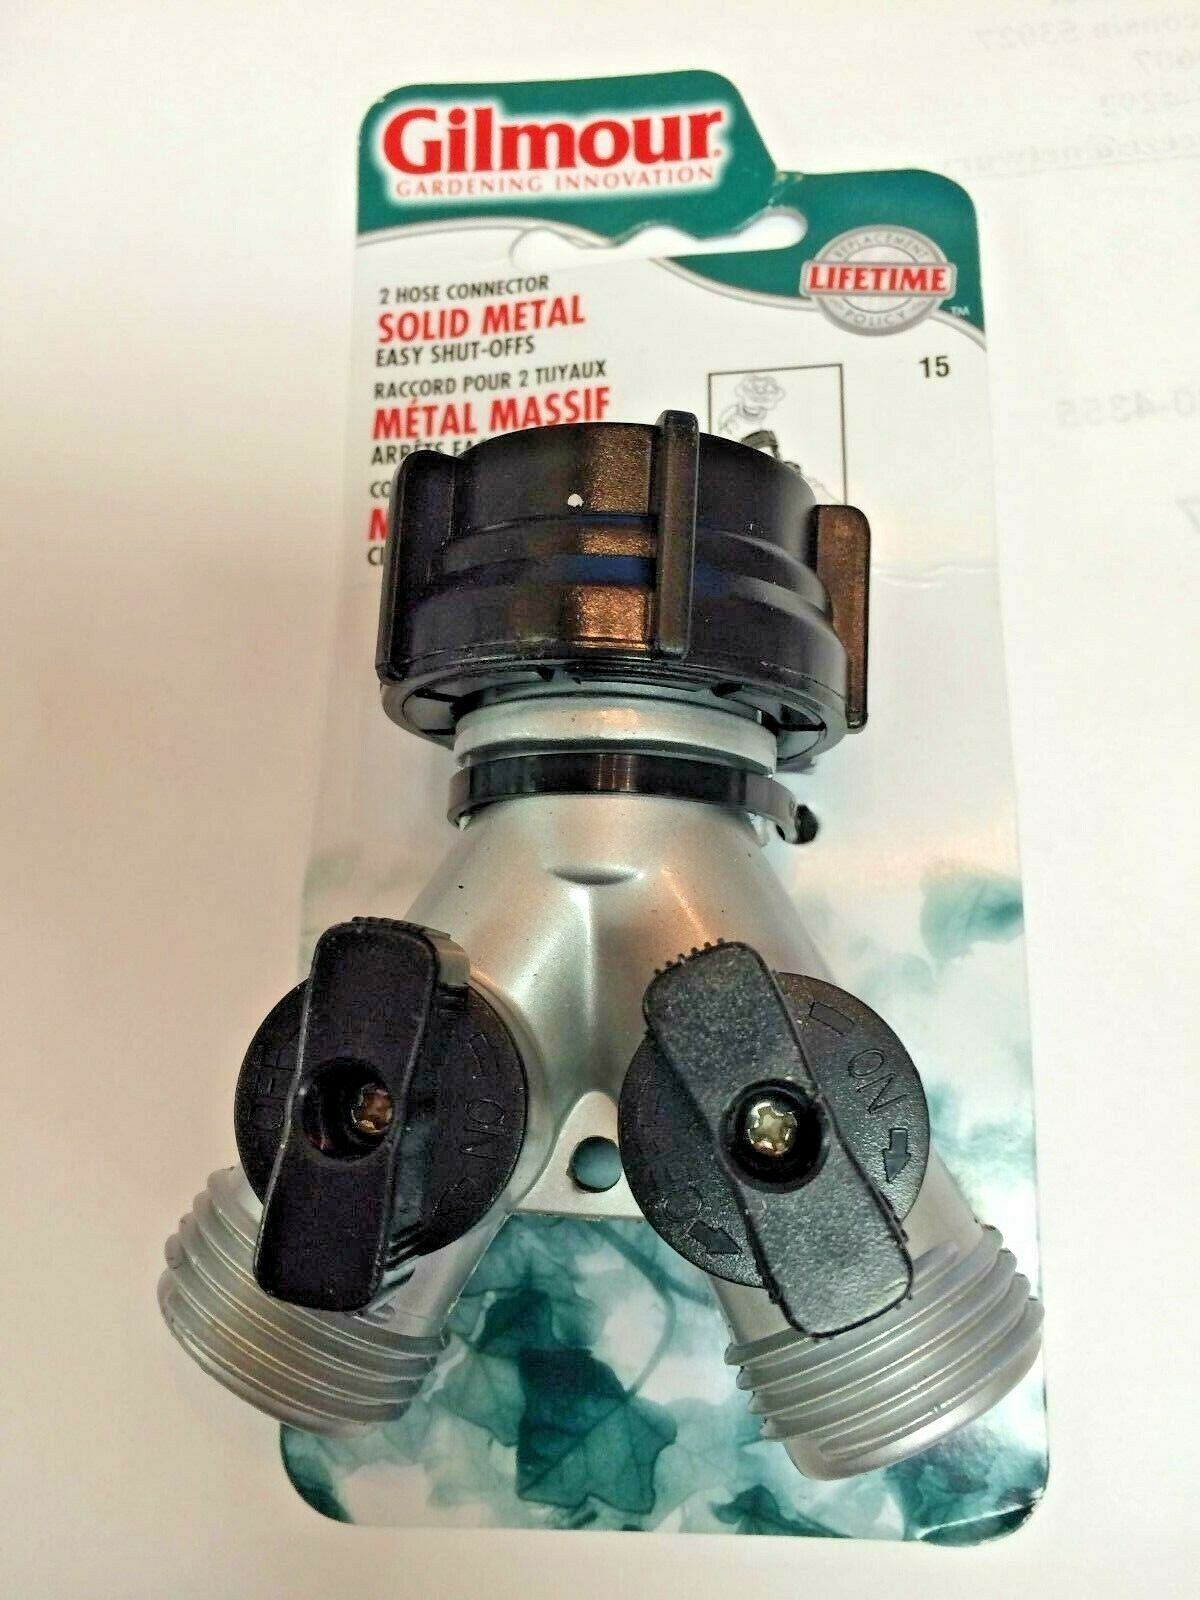 GARDEN HOSE, Multi-Faucet Fitting, Zinc, Two Outlets with Two Shut-Off Valves